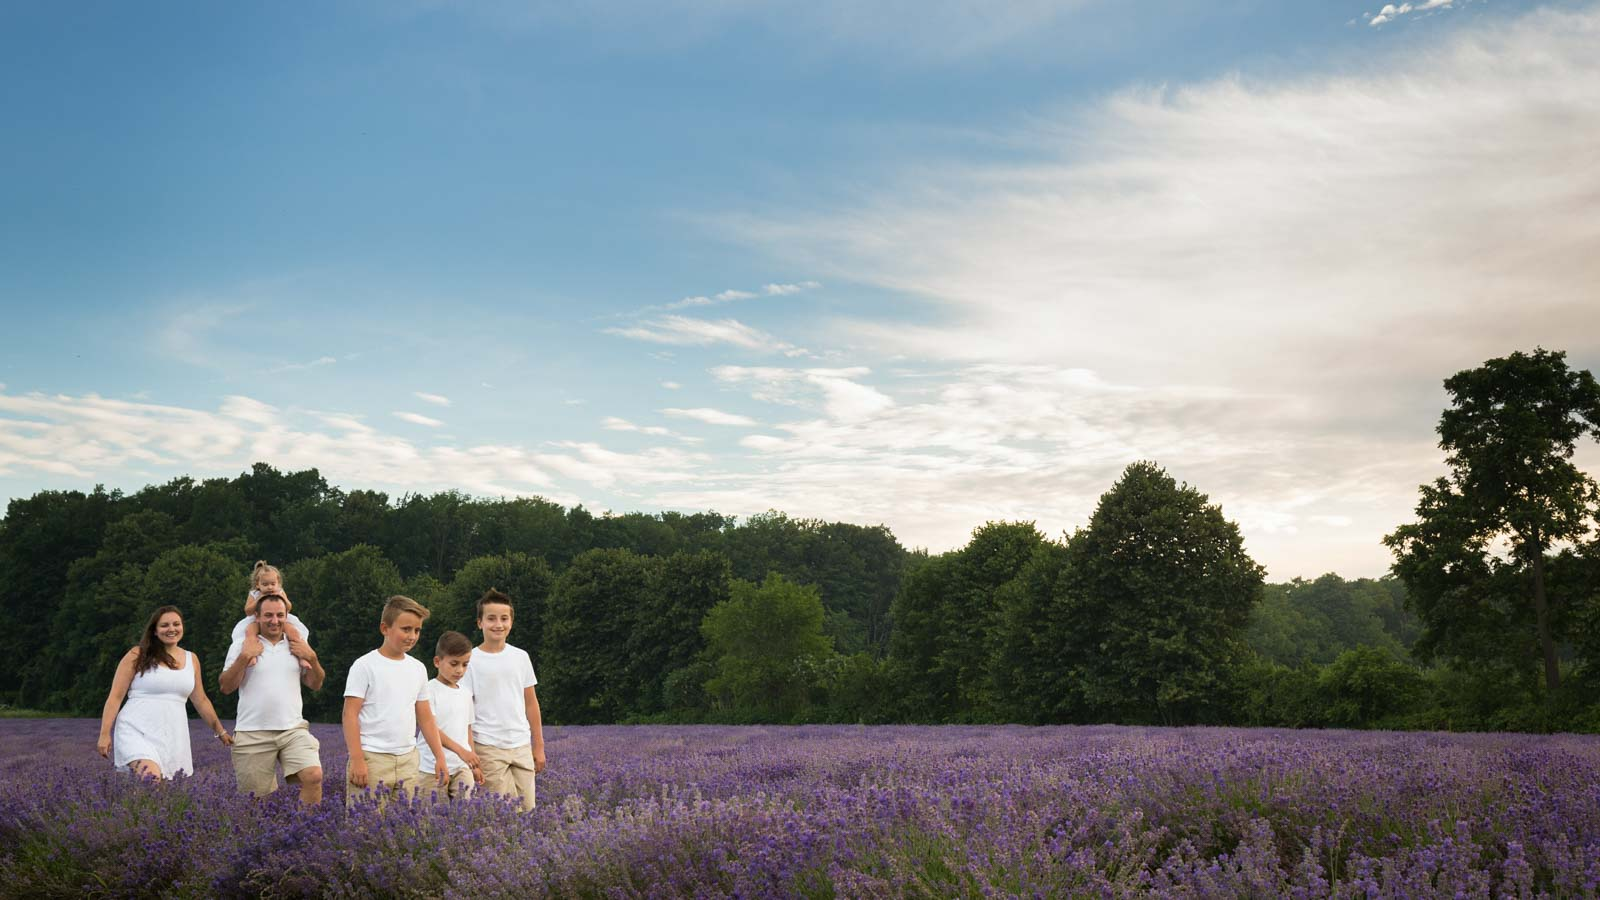 Maison lavande wide shot of lavender field